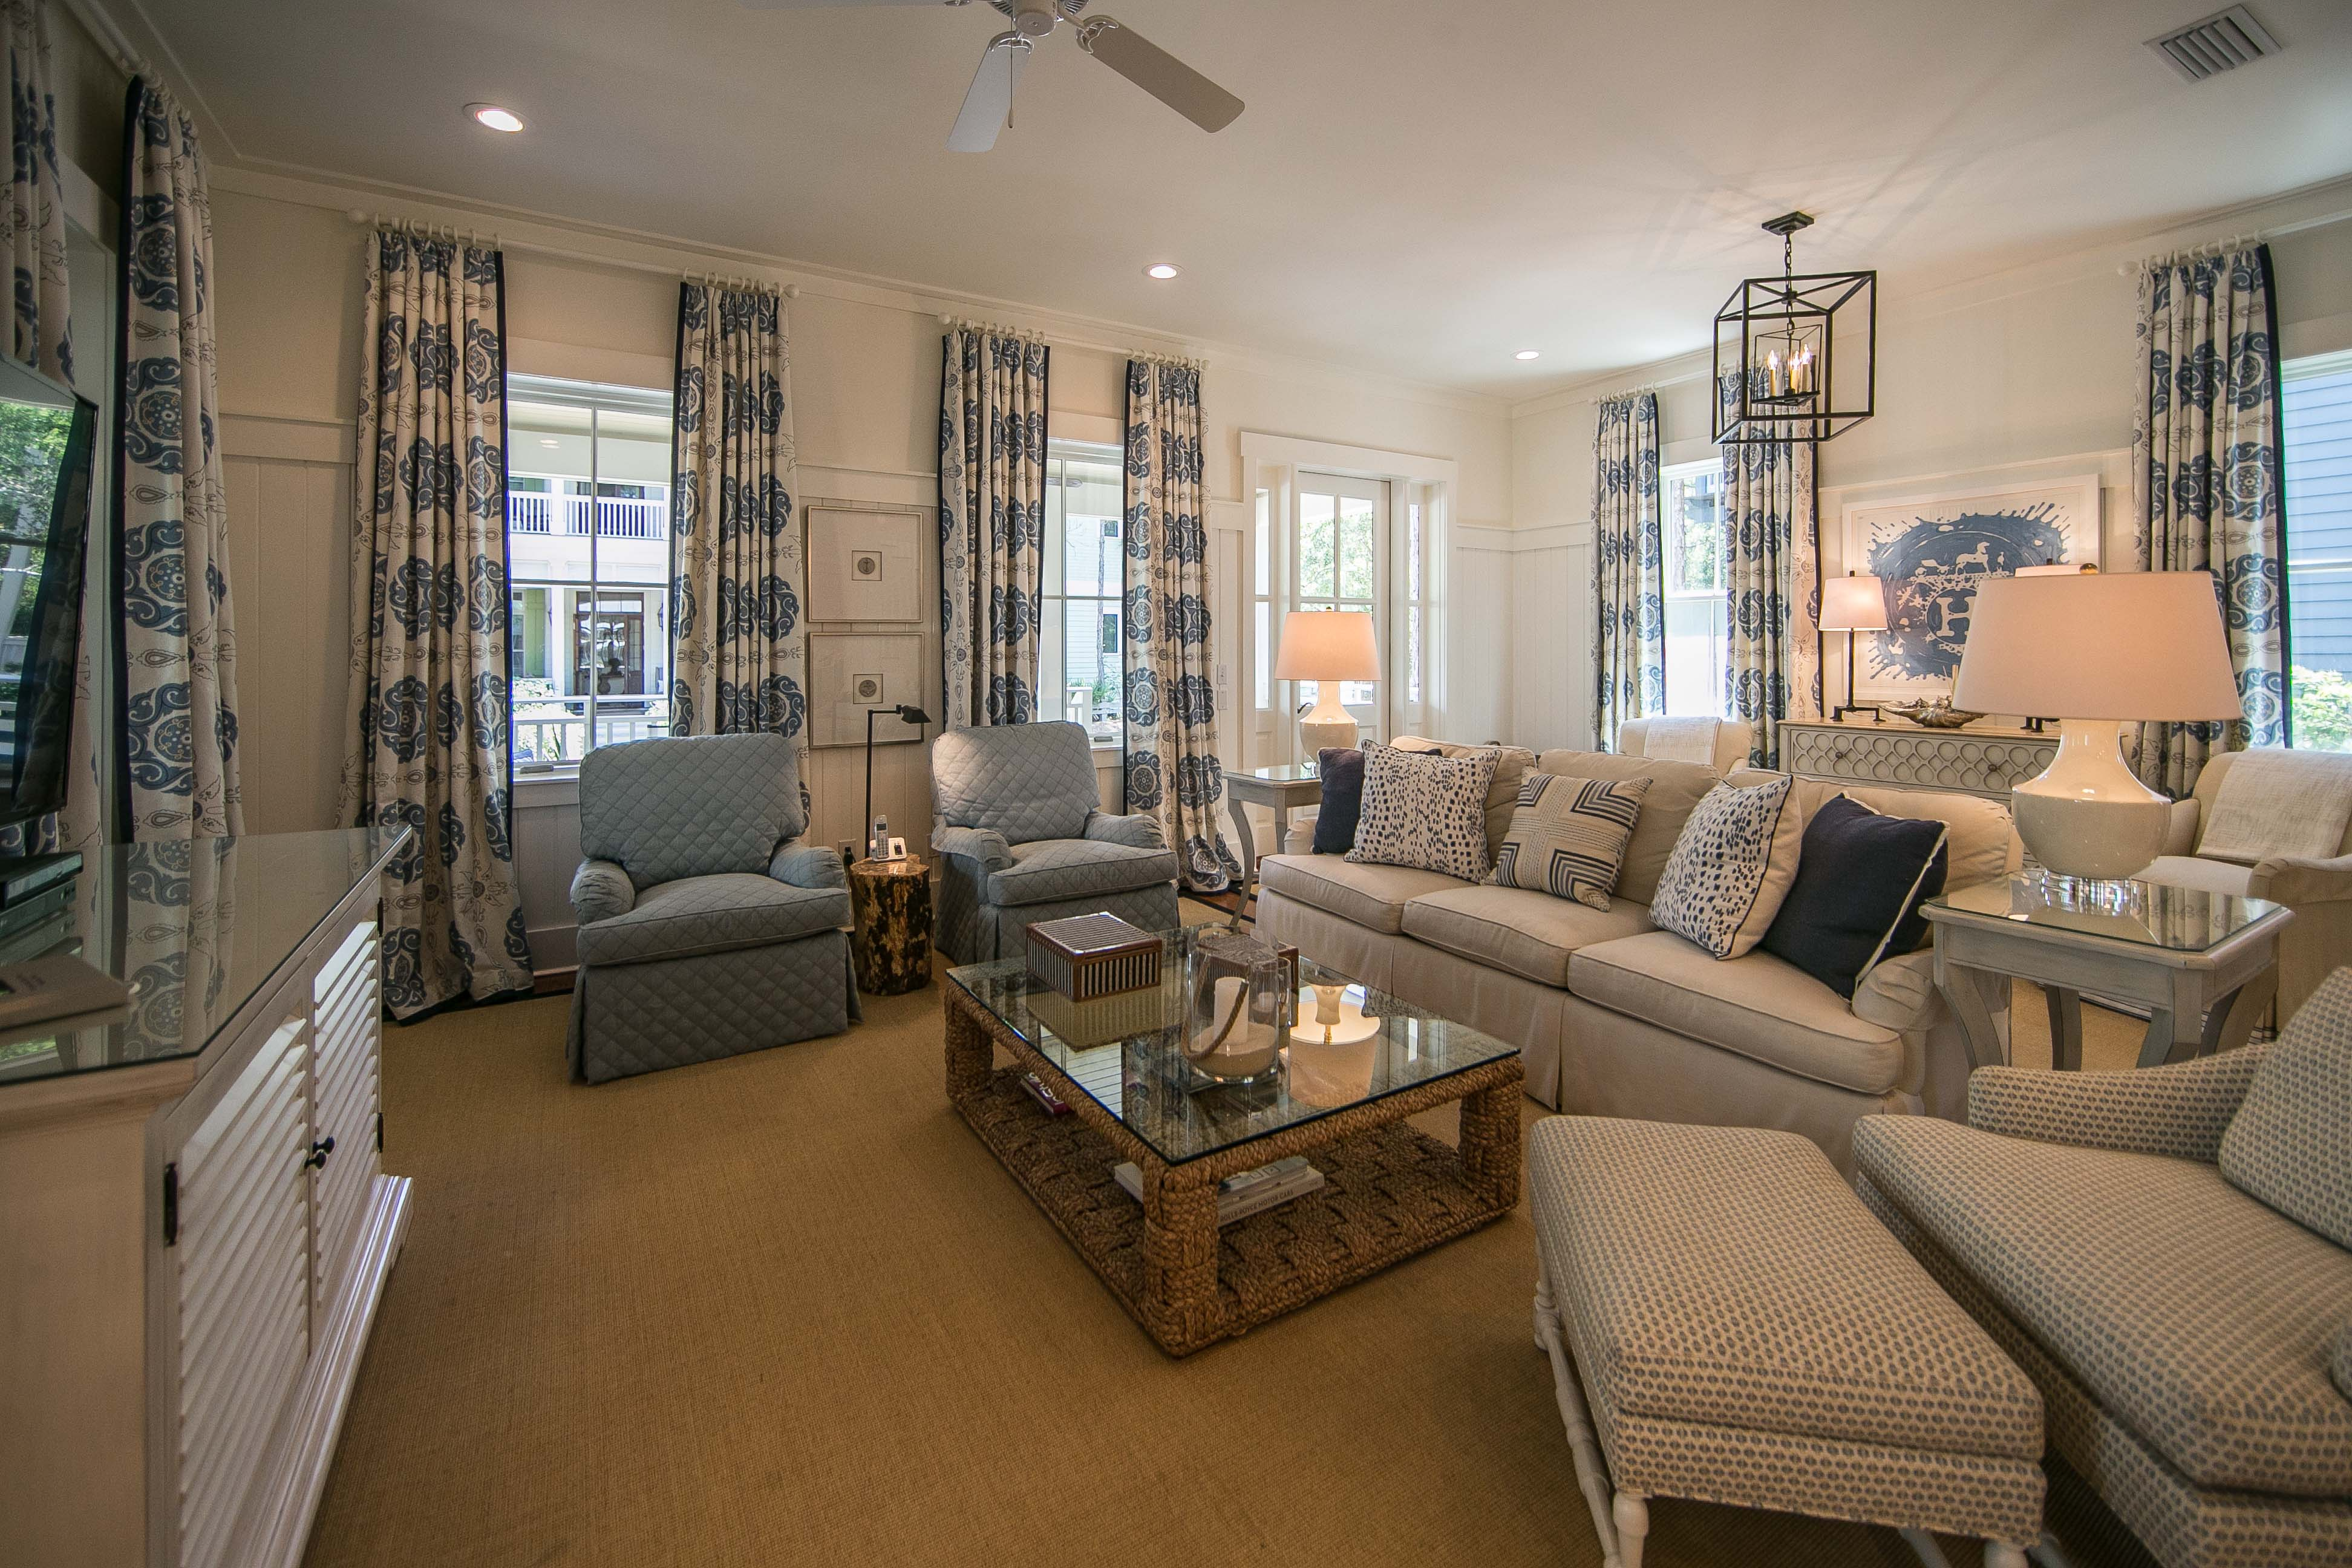 Gorgeous living room with plenty of seating